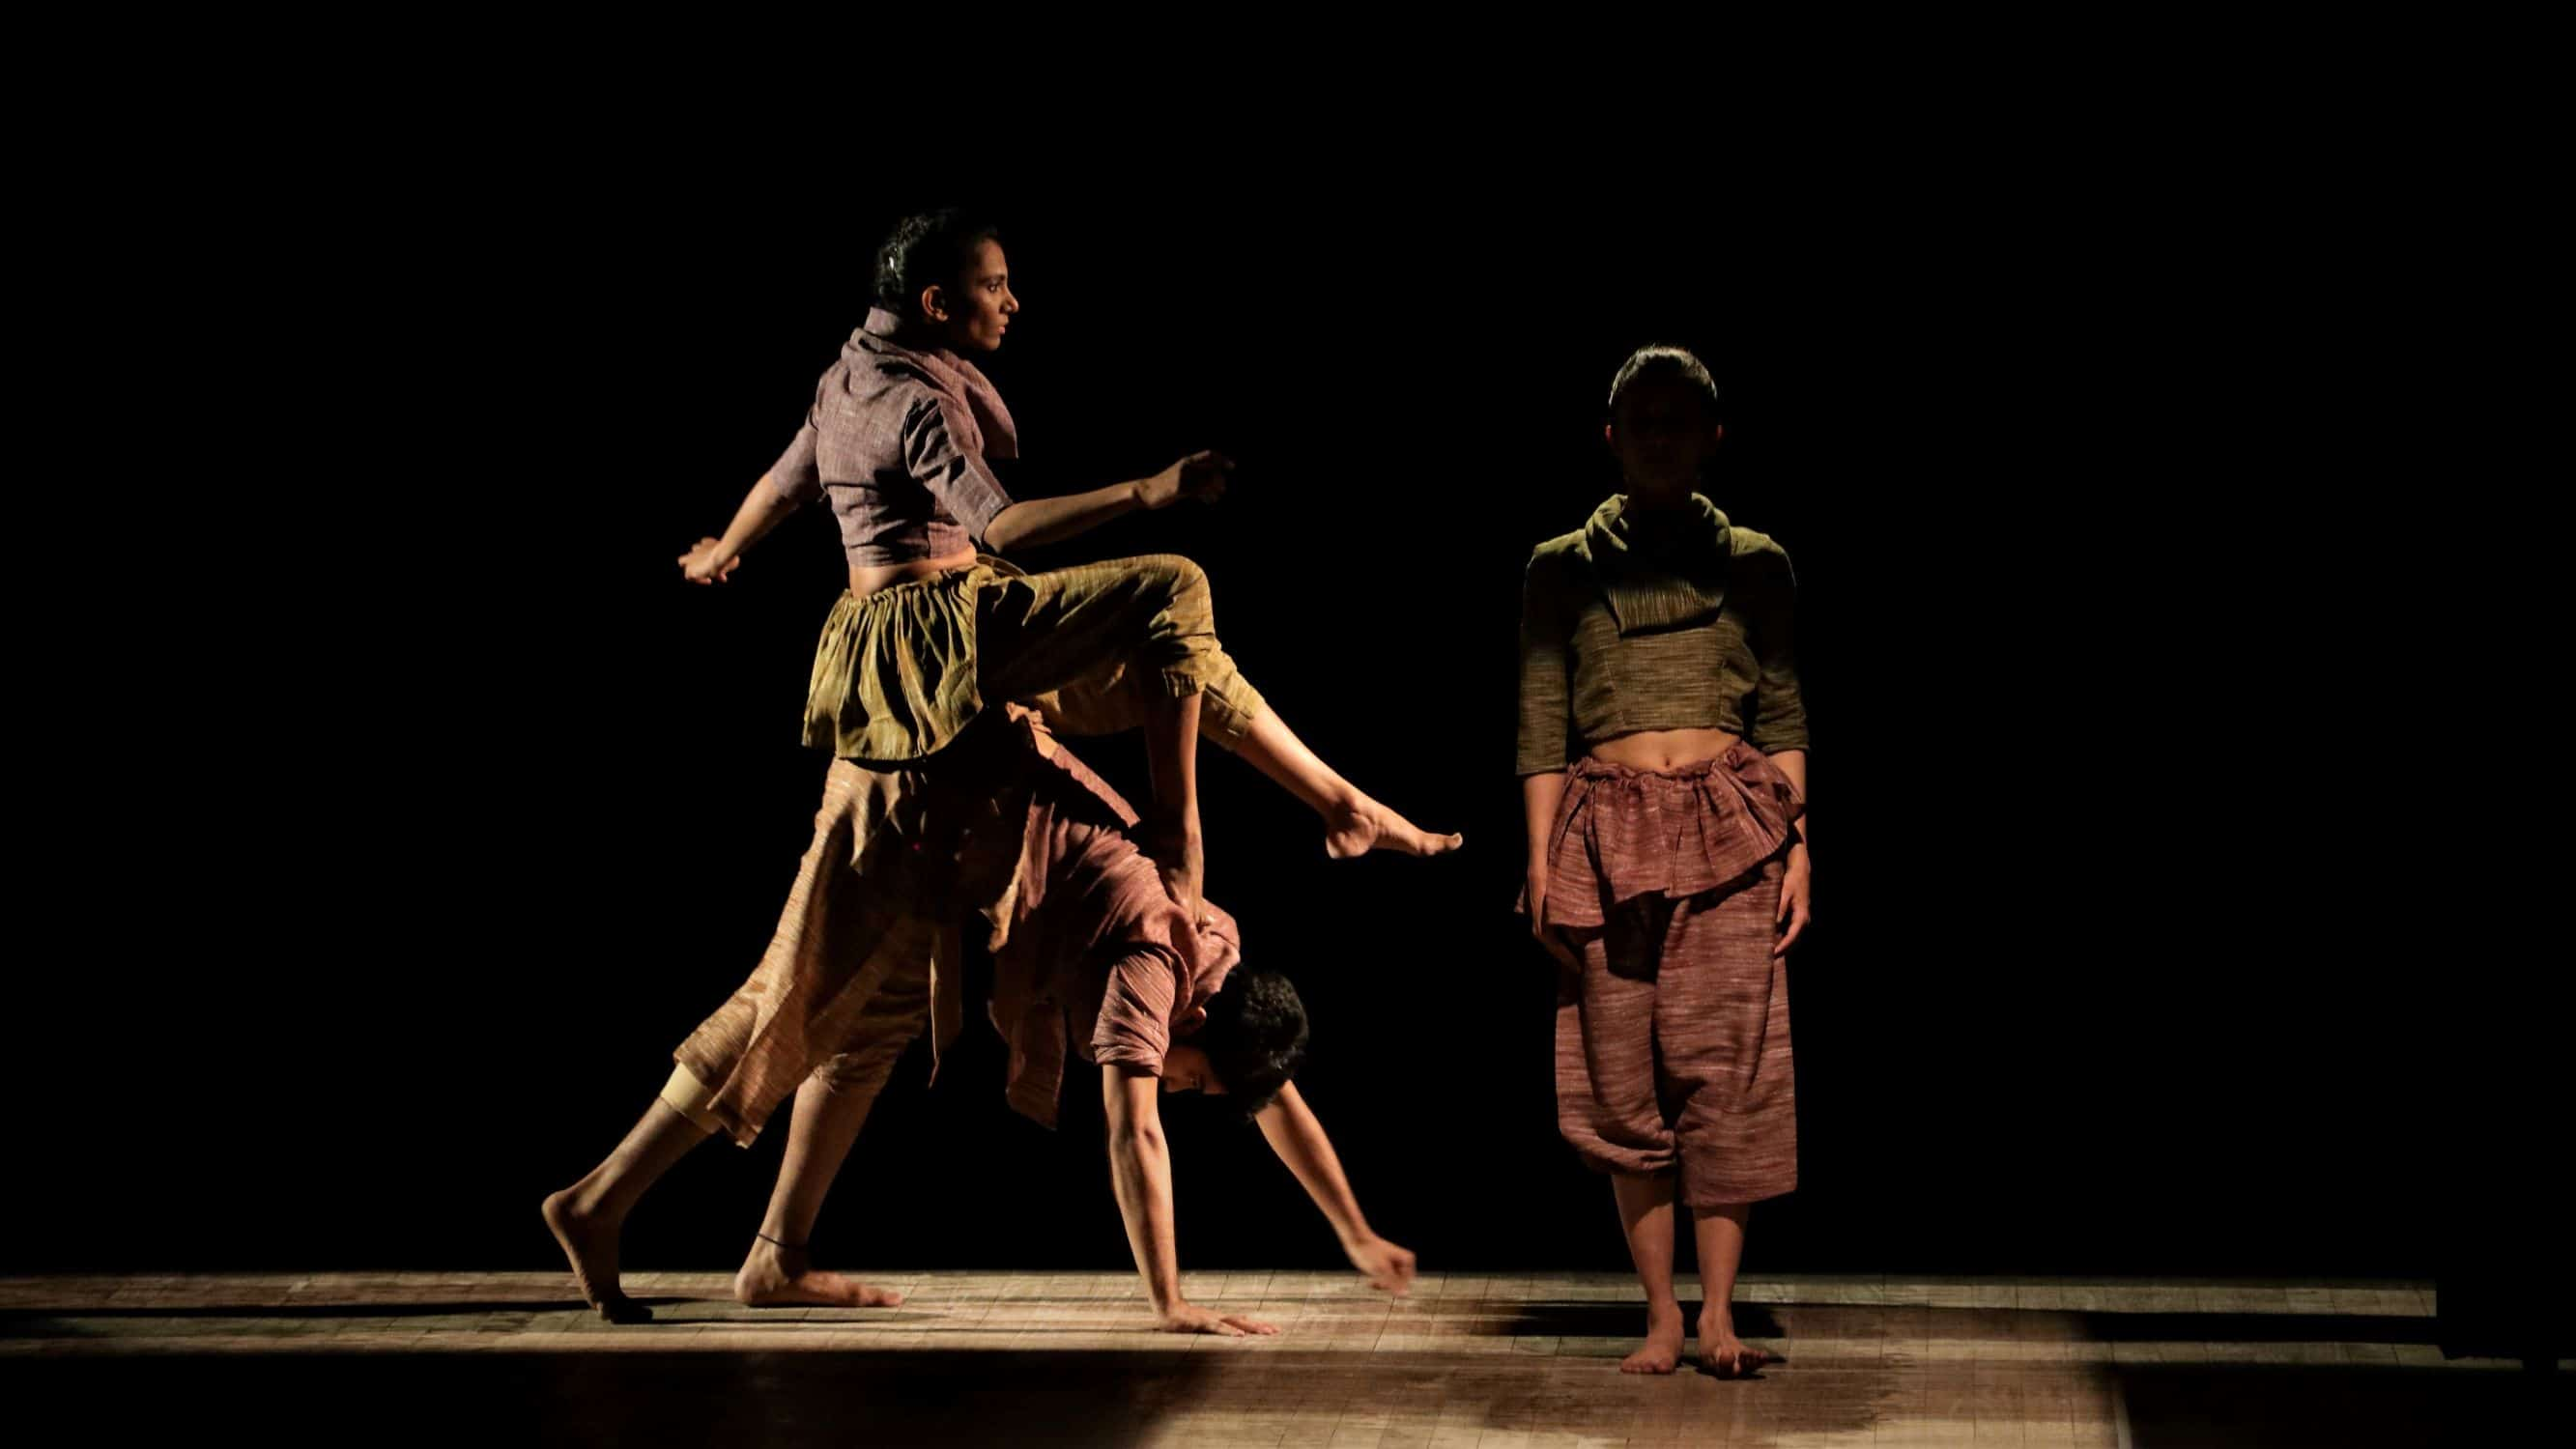 Pyre by Vishwakiran nambi, ADA rangamandhira, Sarvam, LOKA studio for movement practices